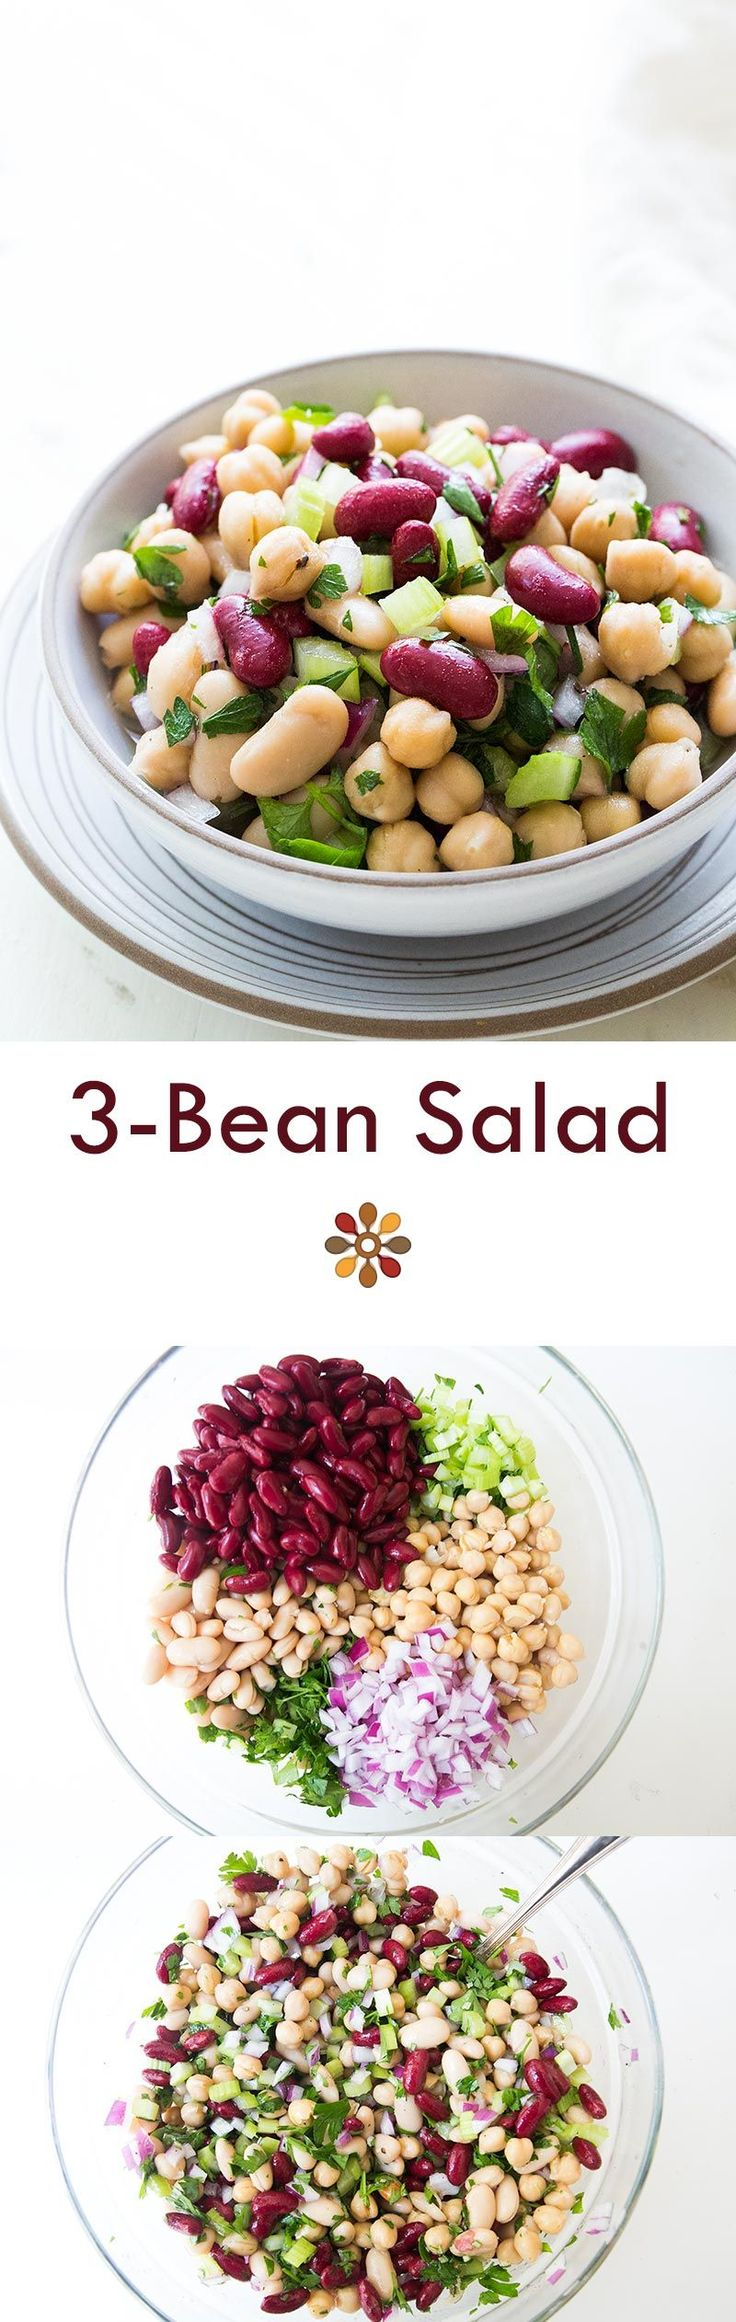 Classic American 3-bean salad, perfect for summer picnics and potlucks! On SimplyRecipes.com #vegan #glutenfree